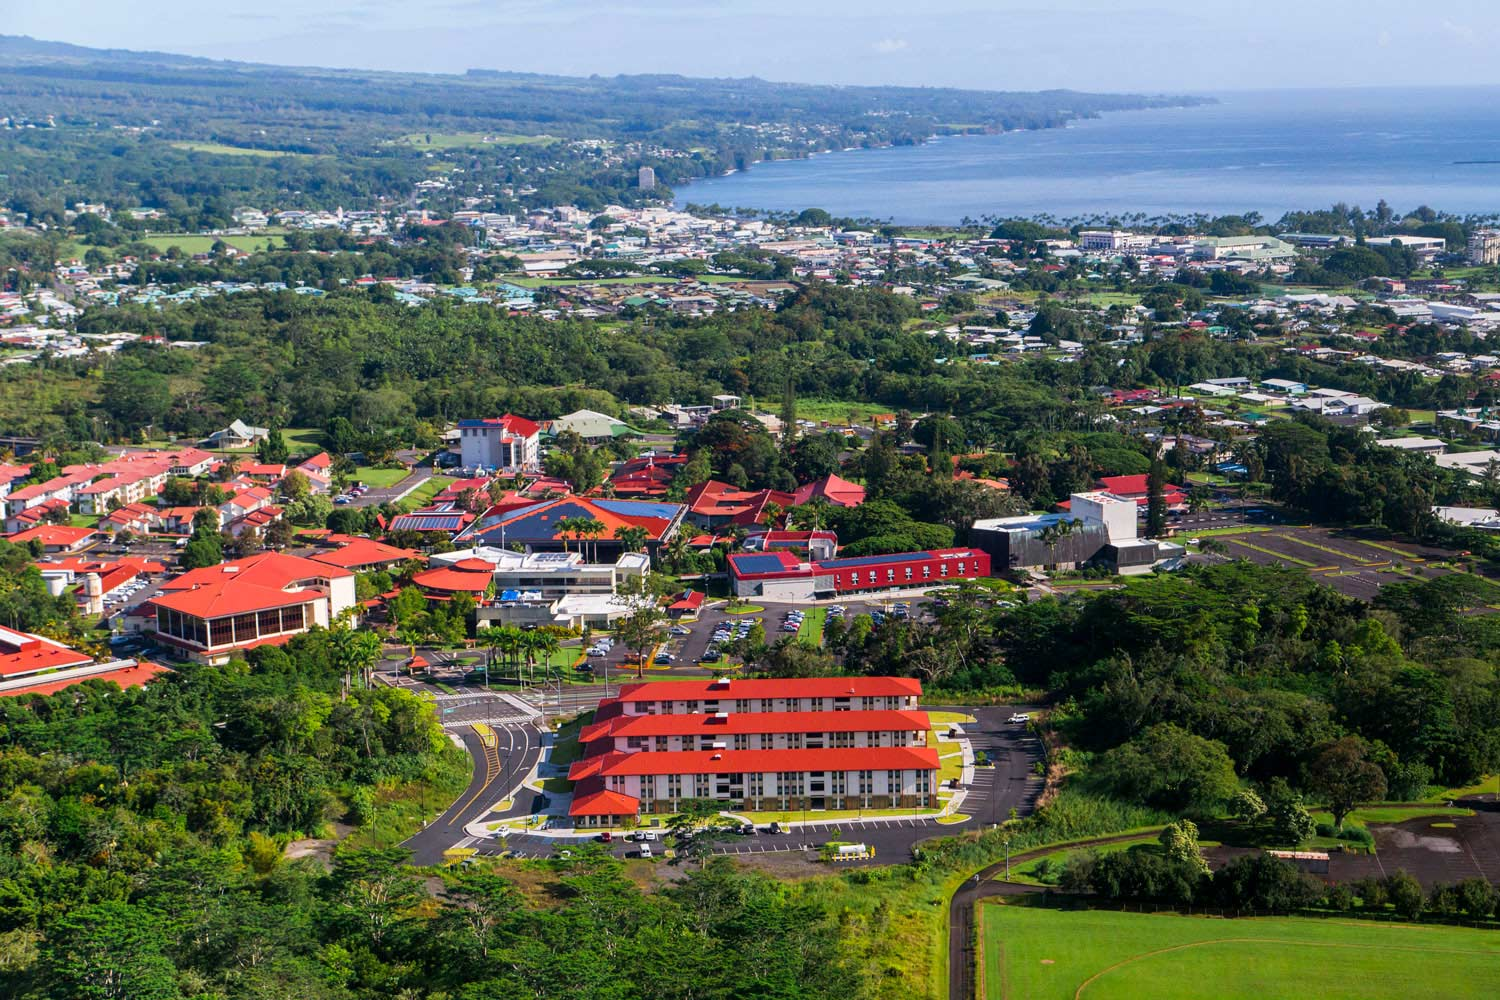 Aerial Photo of the UH Hilo campus and Hilo Bay